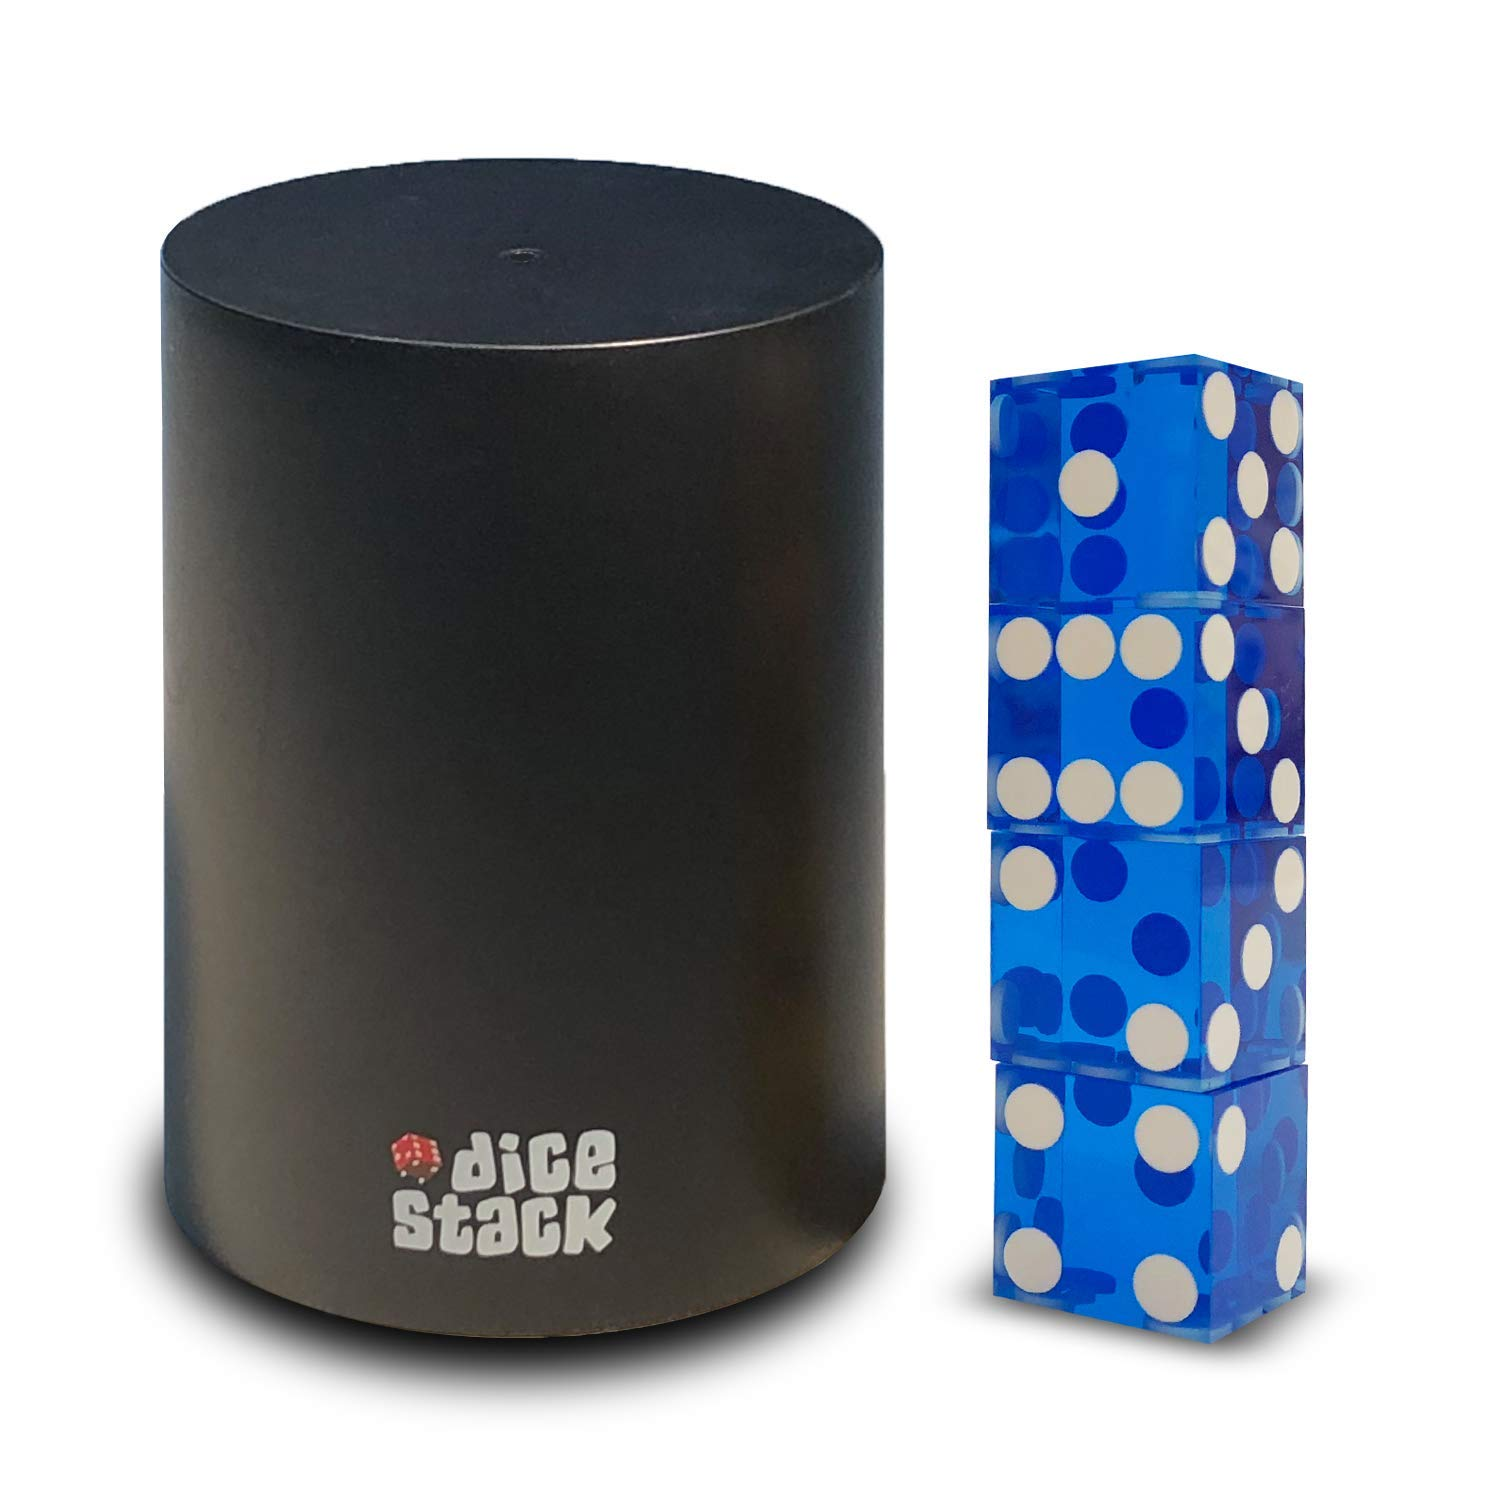 Dice Stacking Cup - Professional Straight Cups Black w/5 19mm Razor Edges Dice - Accessories - Magic Tricks (9cm Blue) by Dice Stack